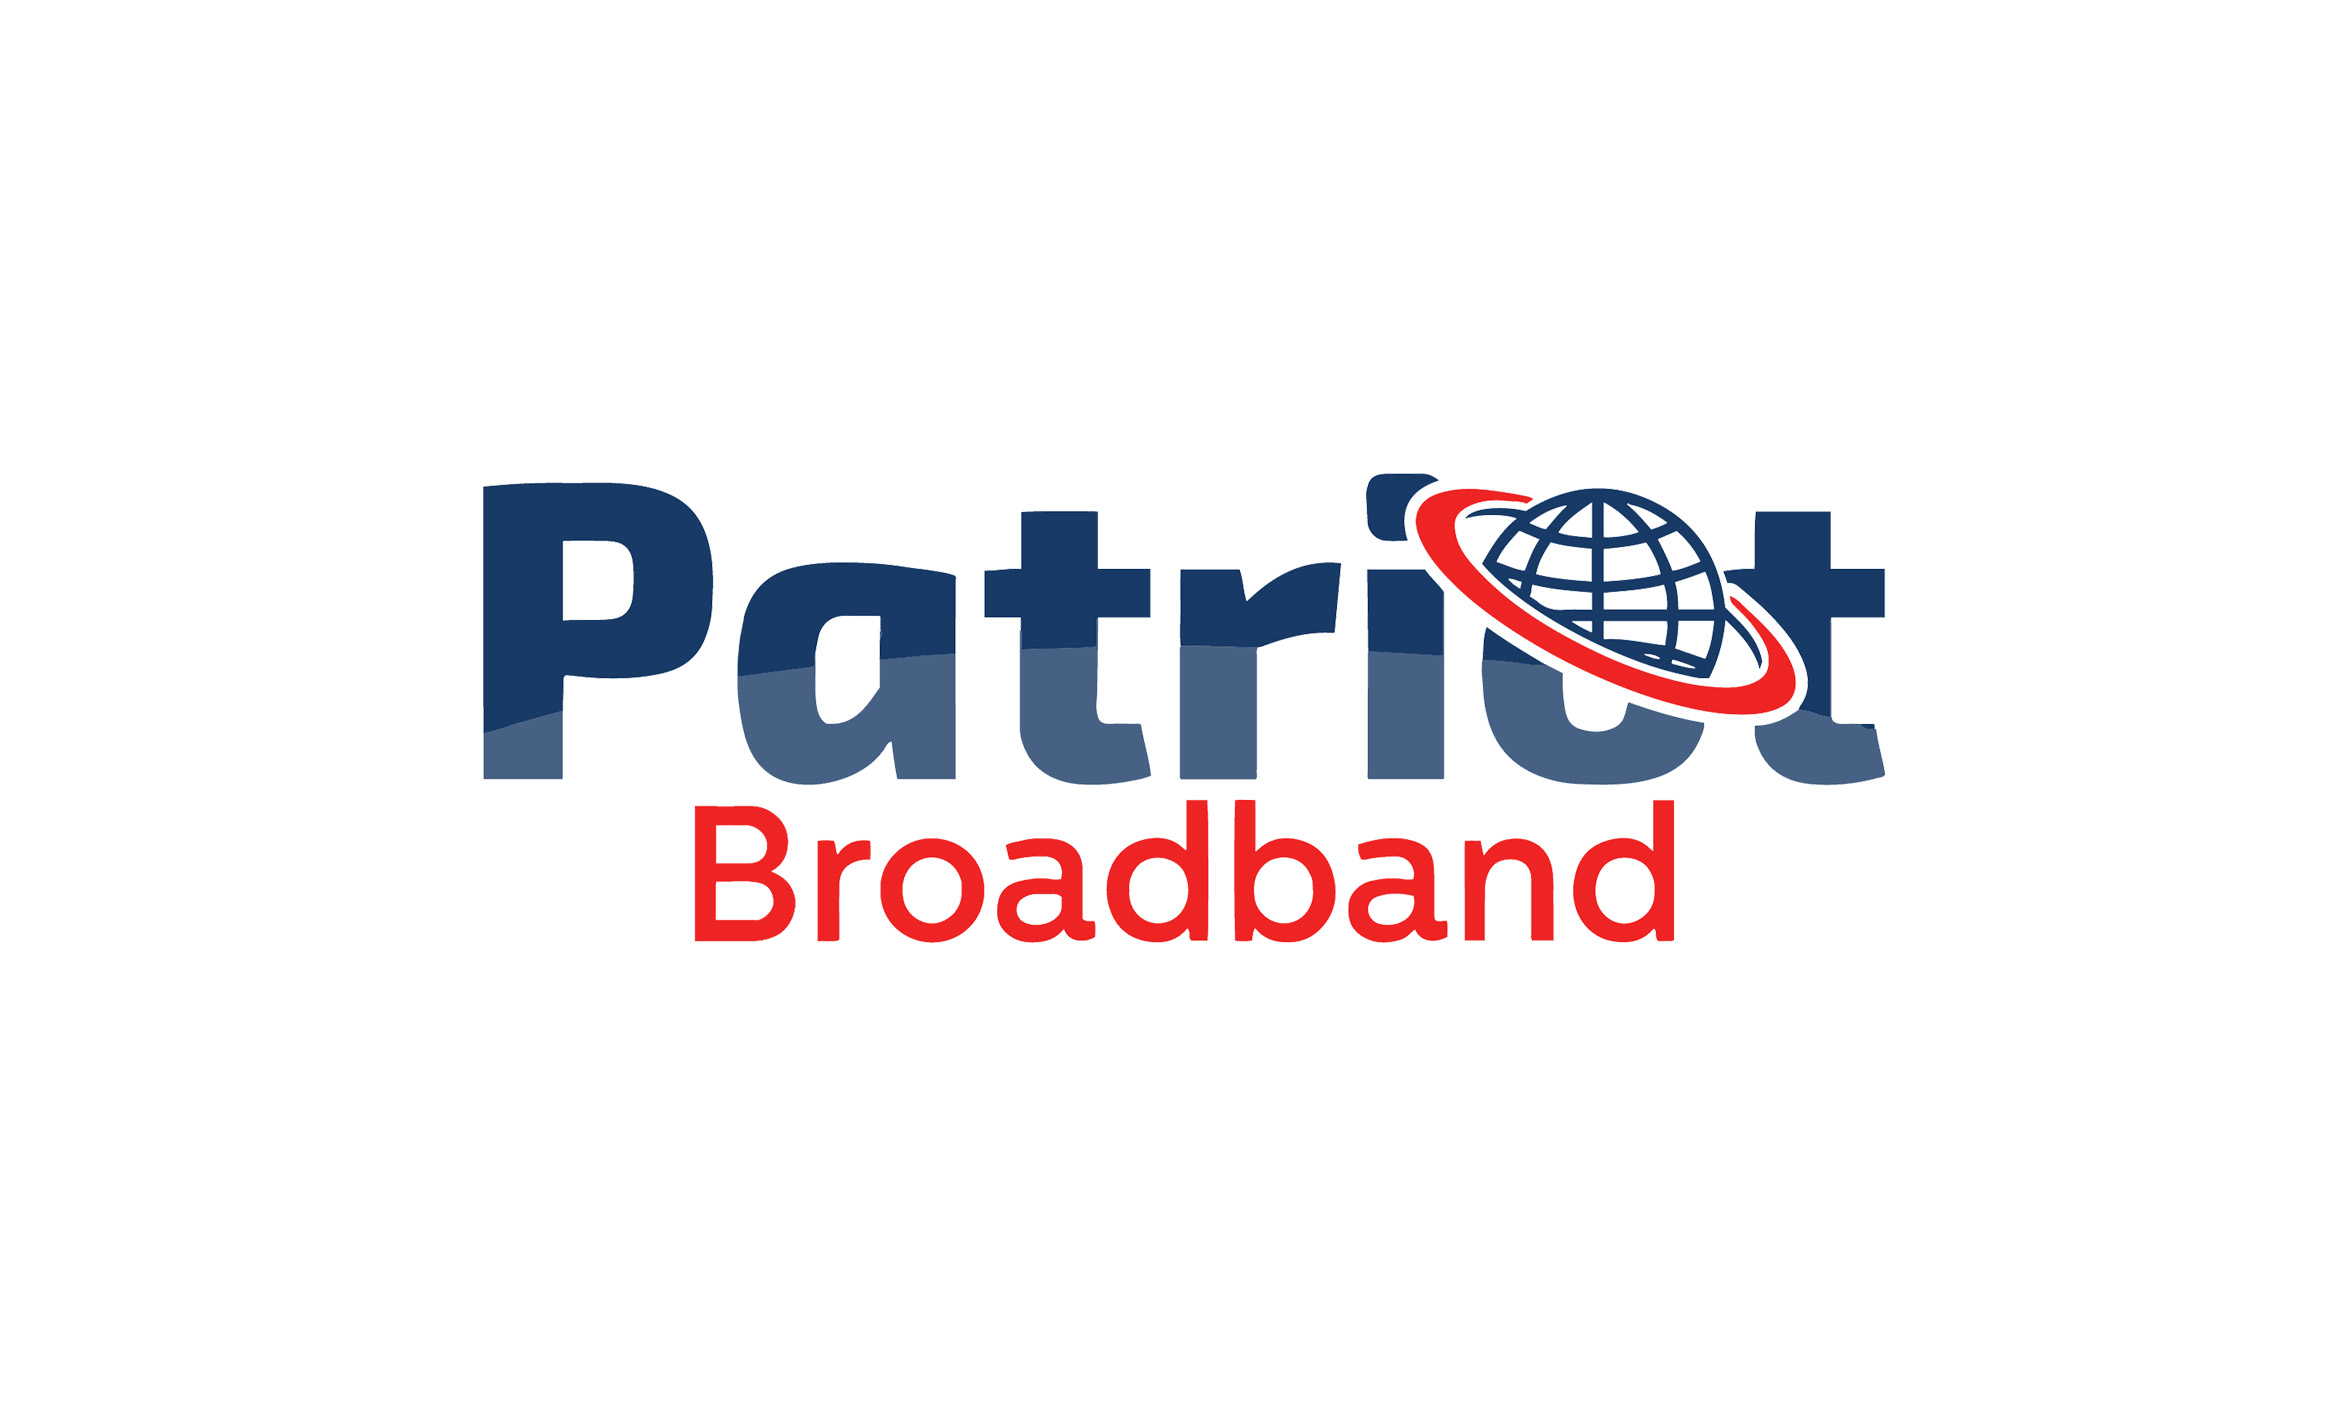 PATRIOT BROADBAND - Patriot Broadband is America's only wireless internet service provider franchise company. We have a mission to bring reliable, fast and secure internet connections to rural and remote communities. Using advanced fiber optics and radio wave frequency, a strong and fast signal is delivered to customers through a Wi-Fi router. Founded by US Air Force veteran Rodney Ballance, Jr., Patriot Broadband offers franchisees an investment opportunity that will also be an investment in their community.